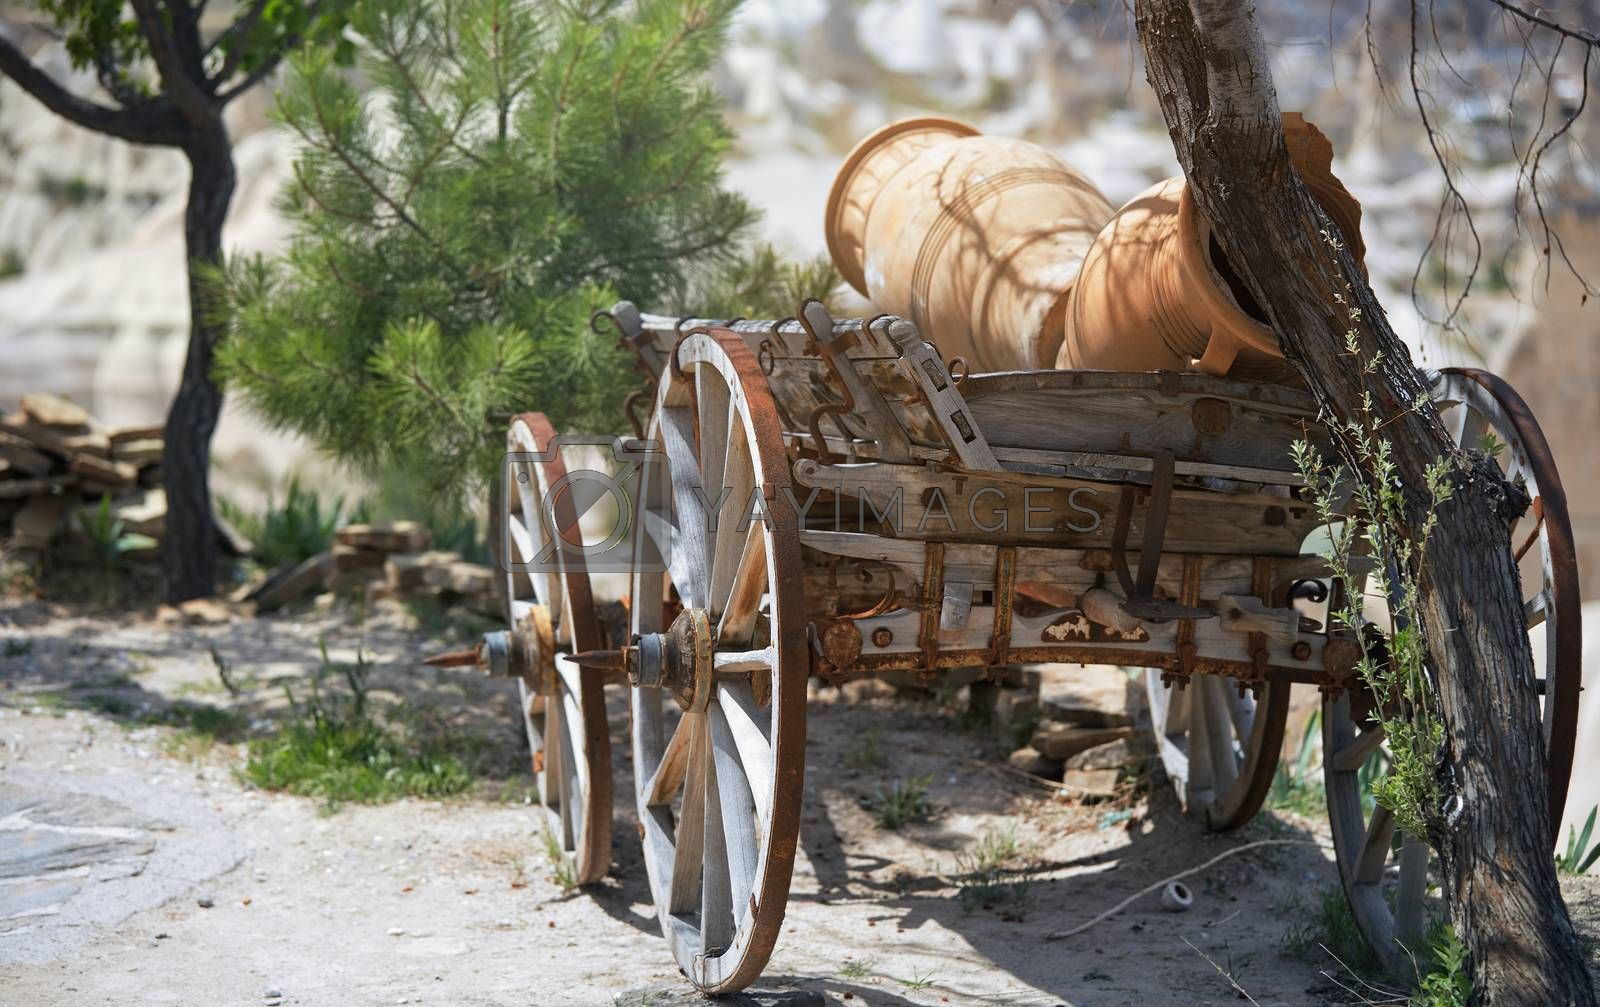 Ancient wooden wheeled wagon with pots